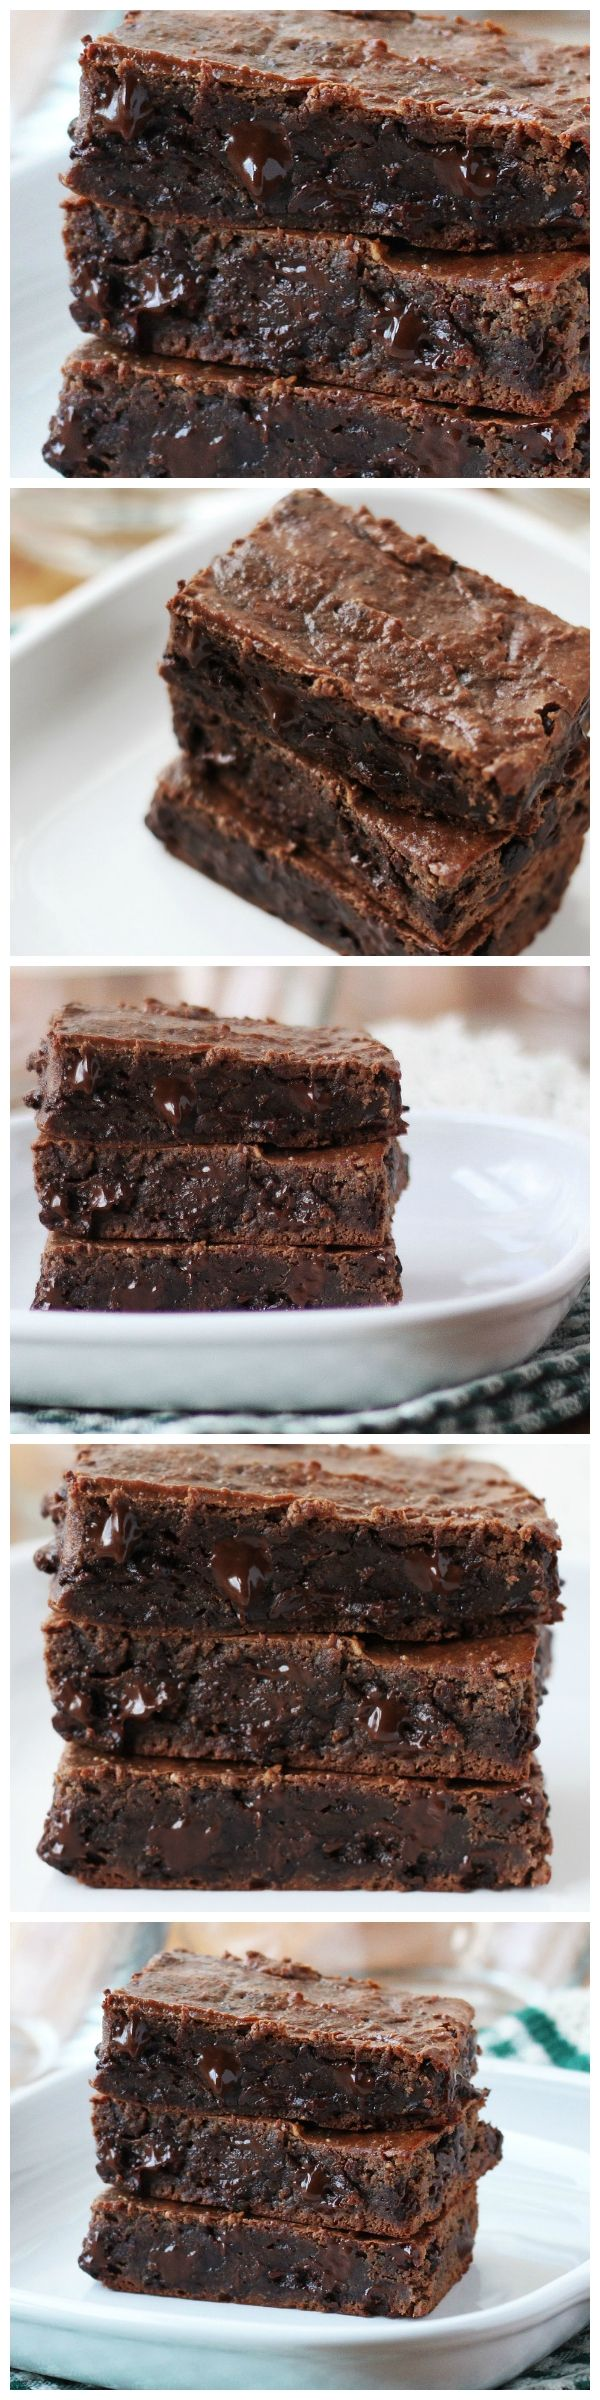 Double Chocolate Grain-Free Brownies - These double chocolate brownies are made with 6 ingredients: bananas, peanut butter, cacao, chocolate chips, raw honey and vanilla; surprisingly healthy with absolutely no flour!